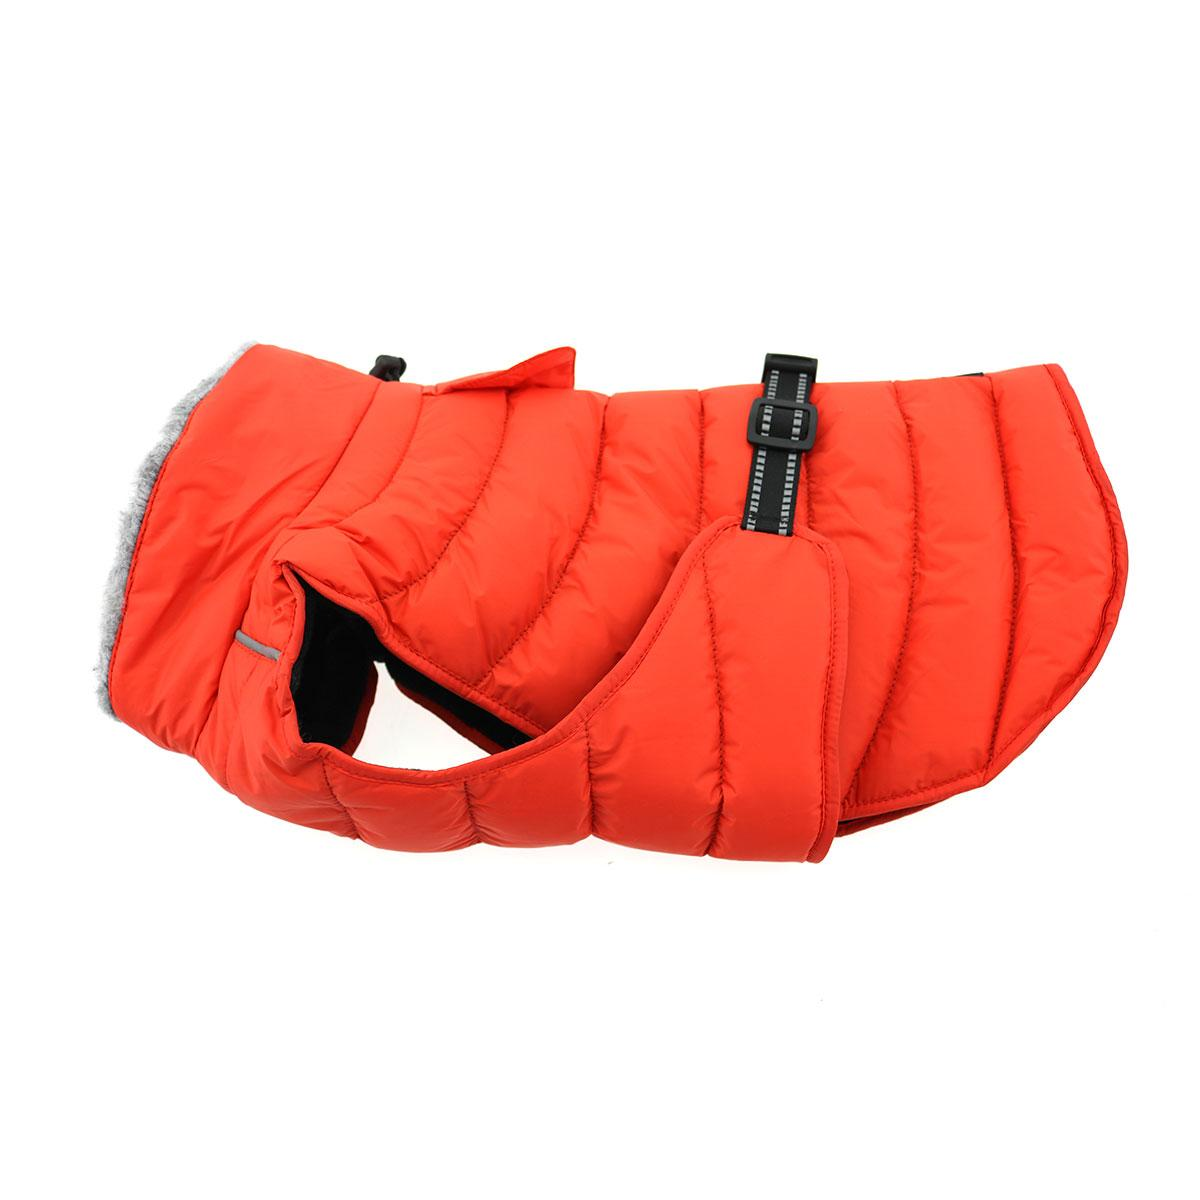 Doggie Design Alpine Extreme Weather Puffer Coat for Dogs, Orange, X-Small